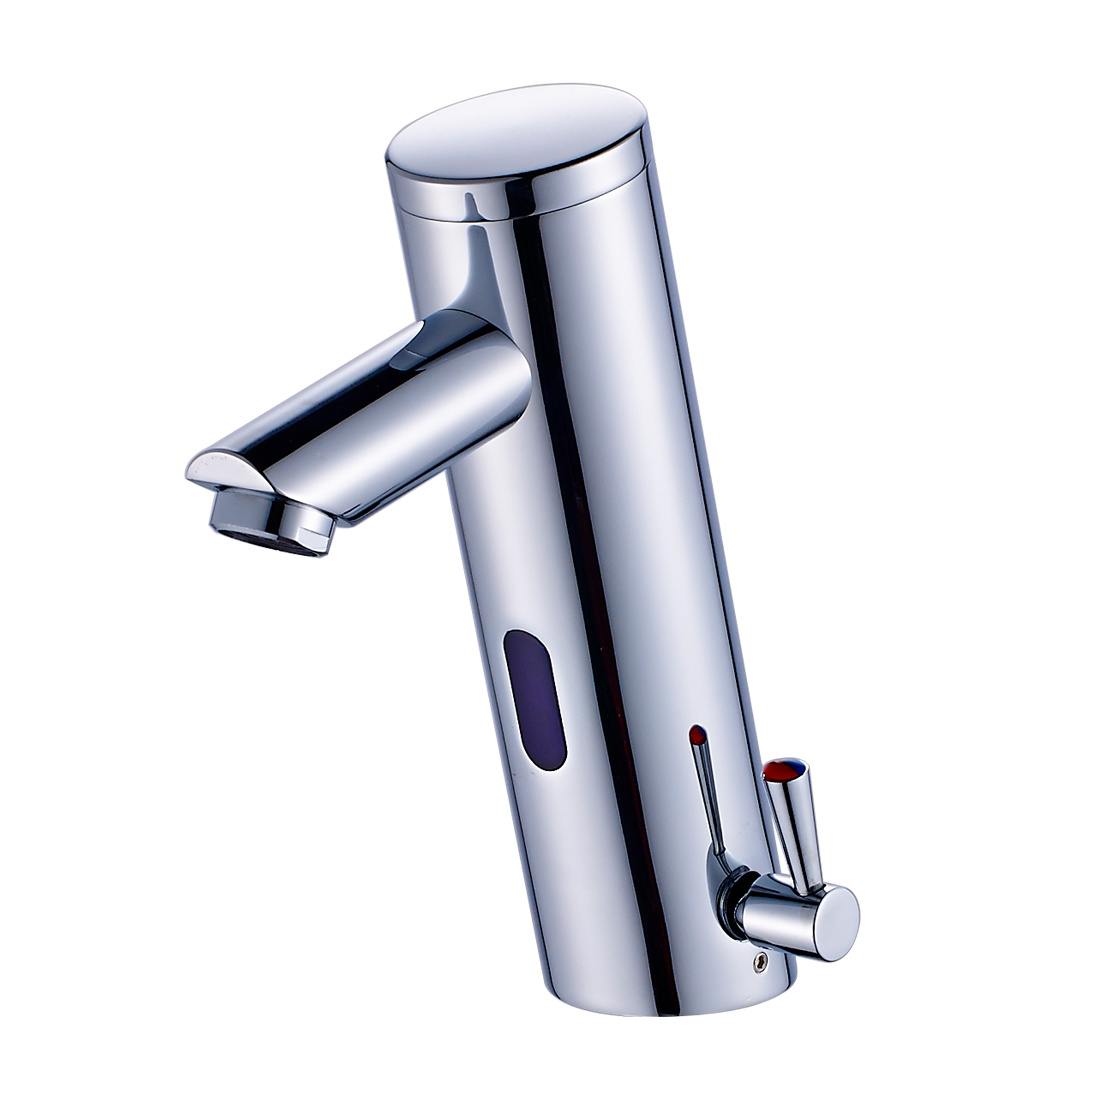 China Flg Bathroom Faucet Automatic Bathroom Faucet Sensor Taps ...